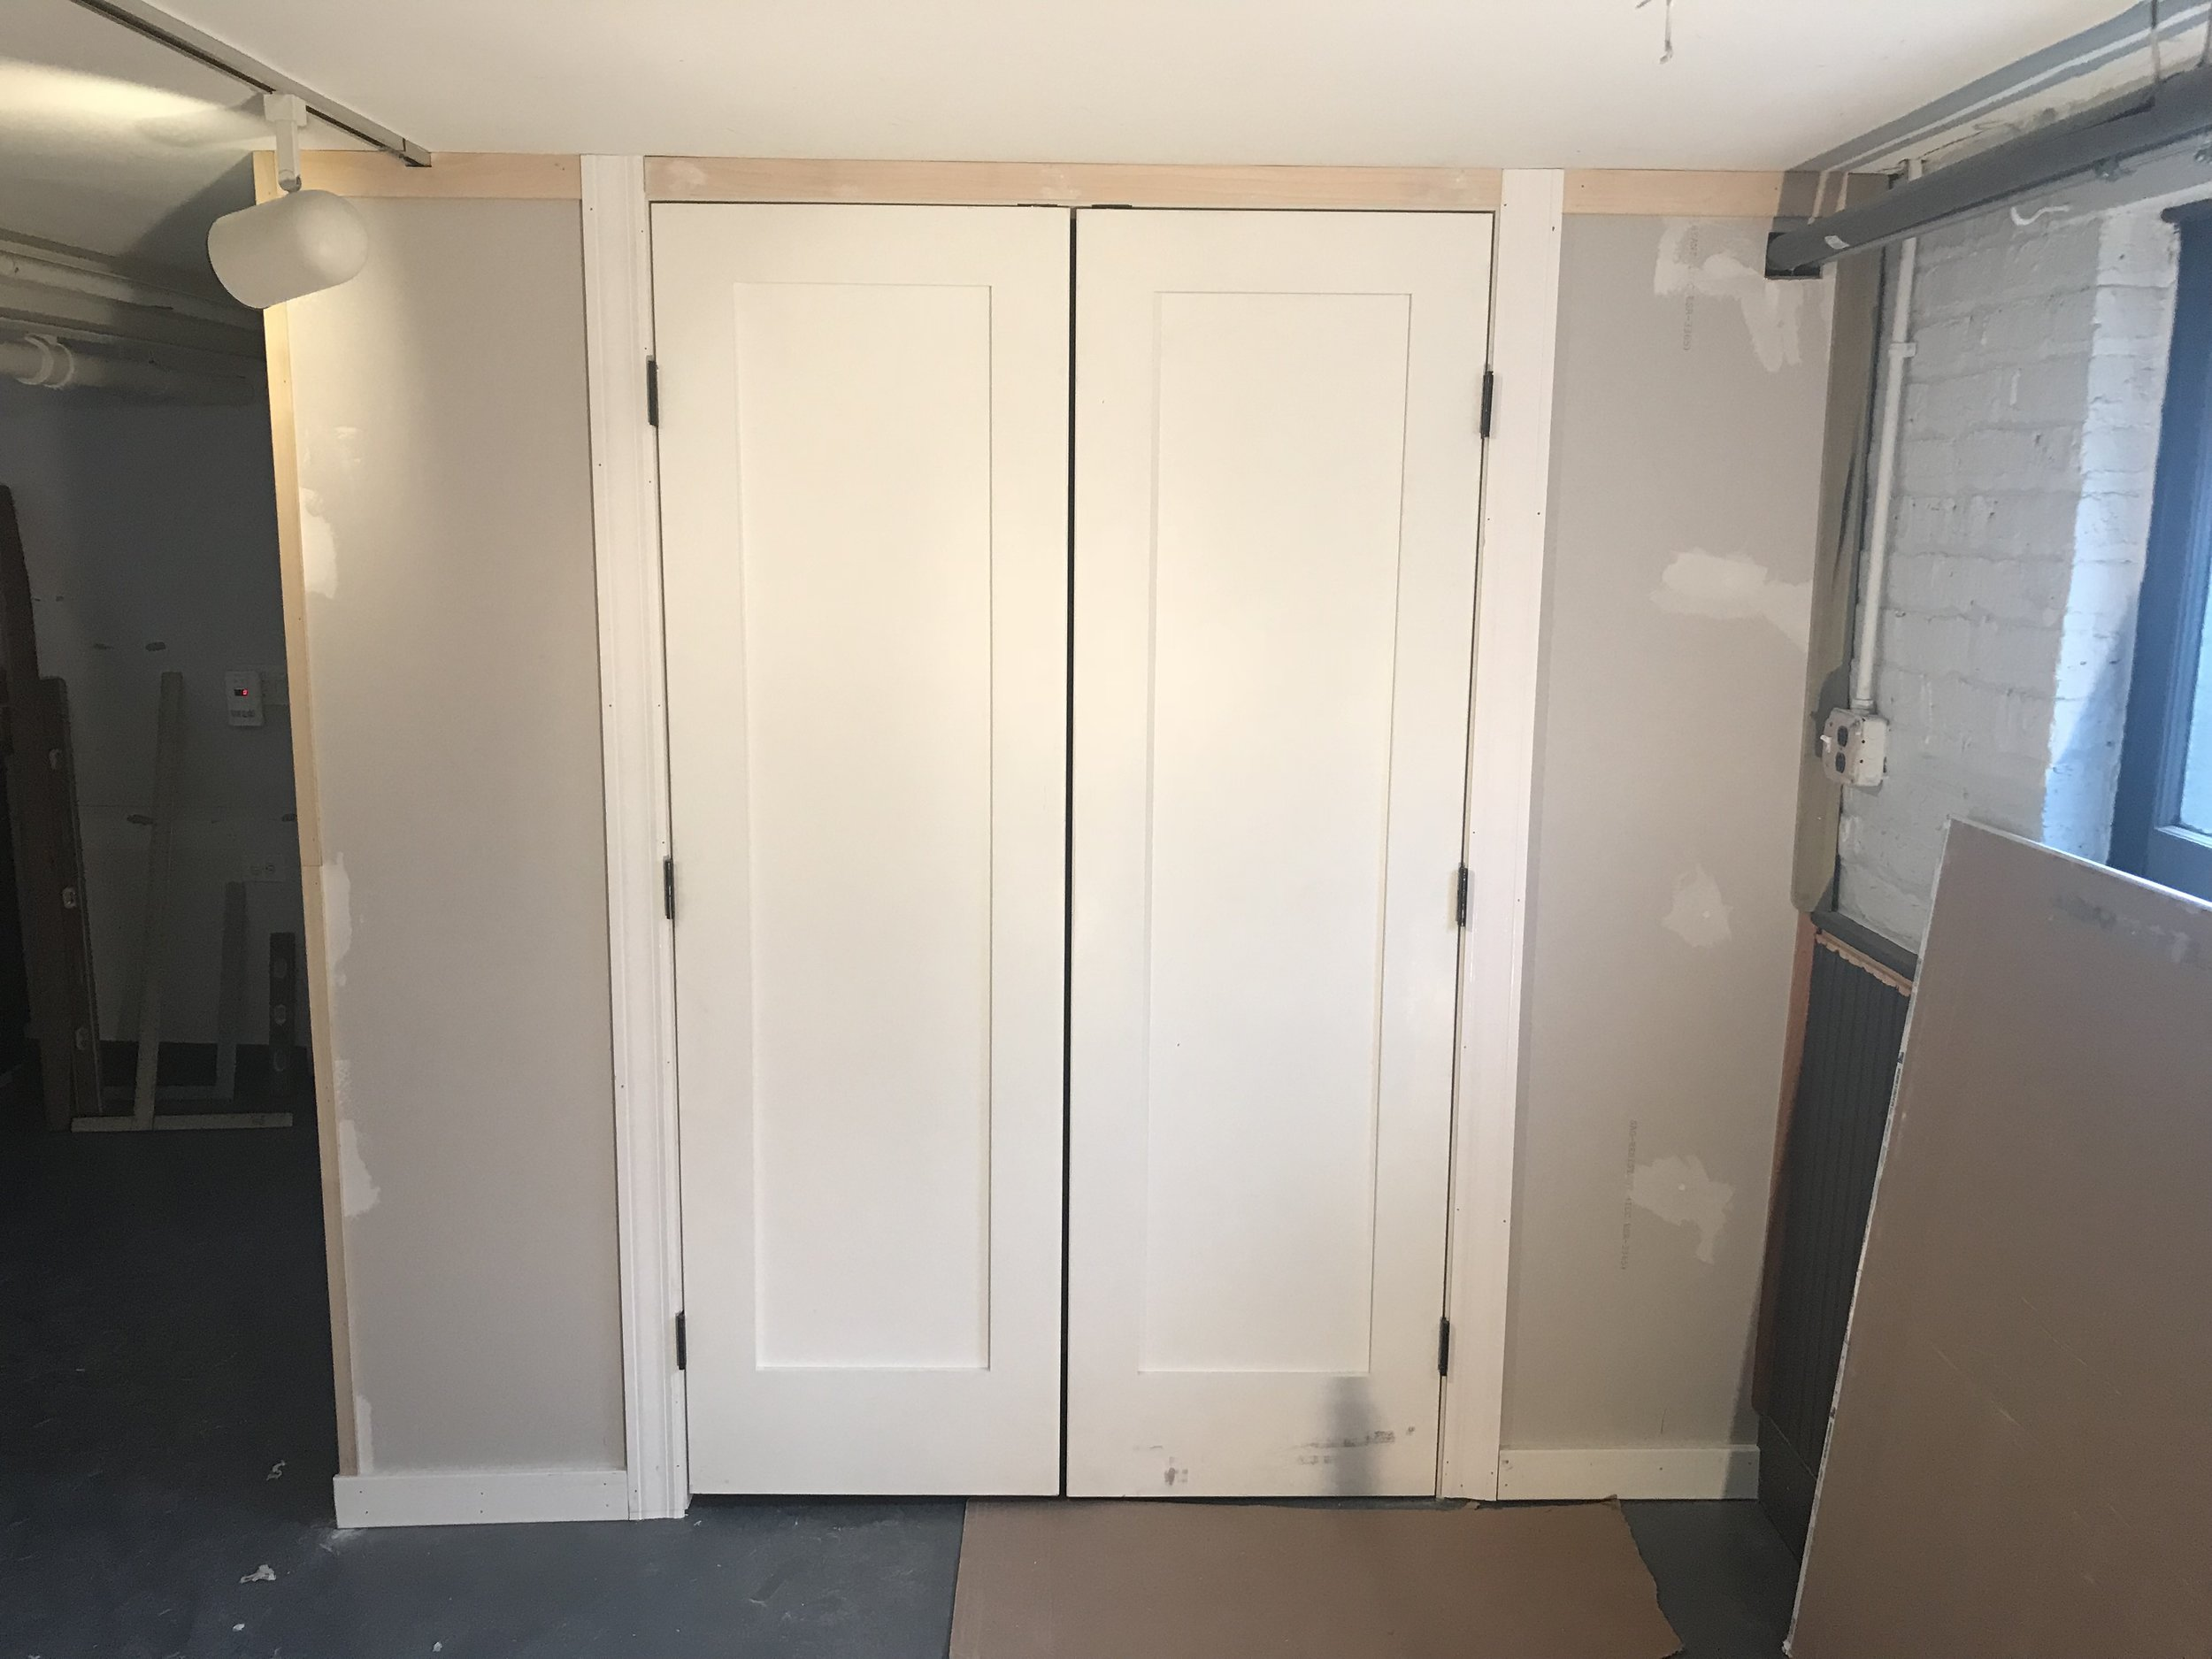 This is where my dad comes in. While Mike and I were on our babymoon in Palm Springs, he built us this closet that was deep enough for the baby stuff that needed to be behind closed doors.